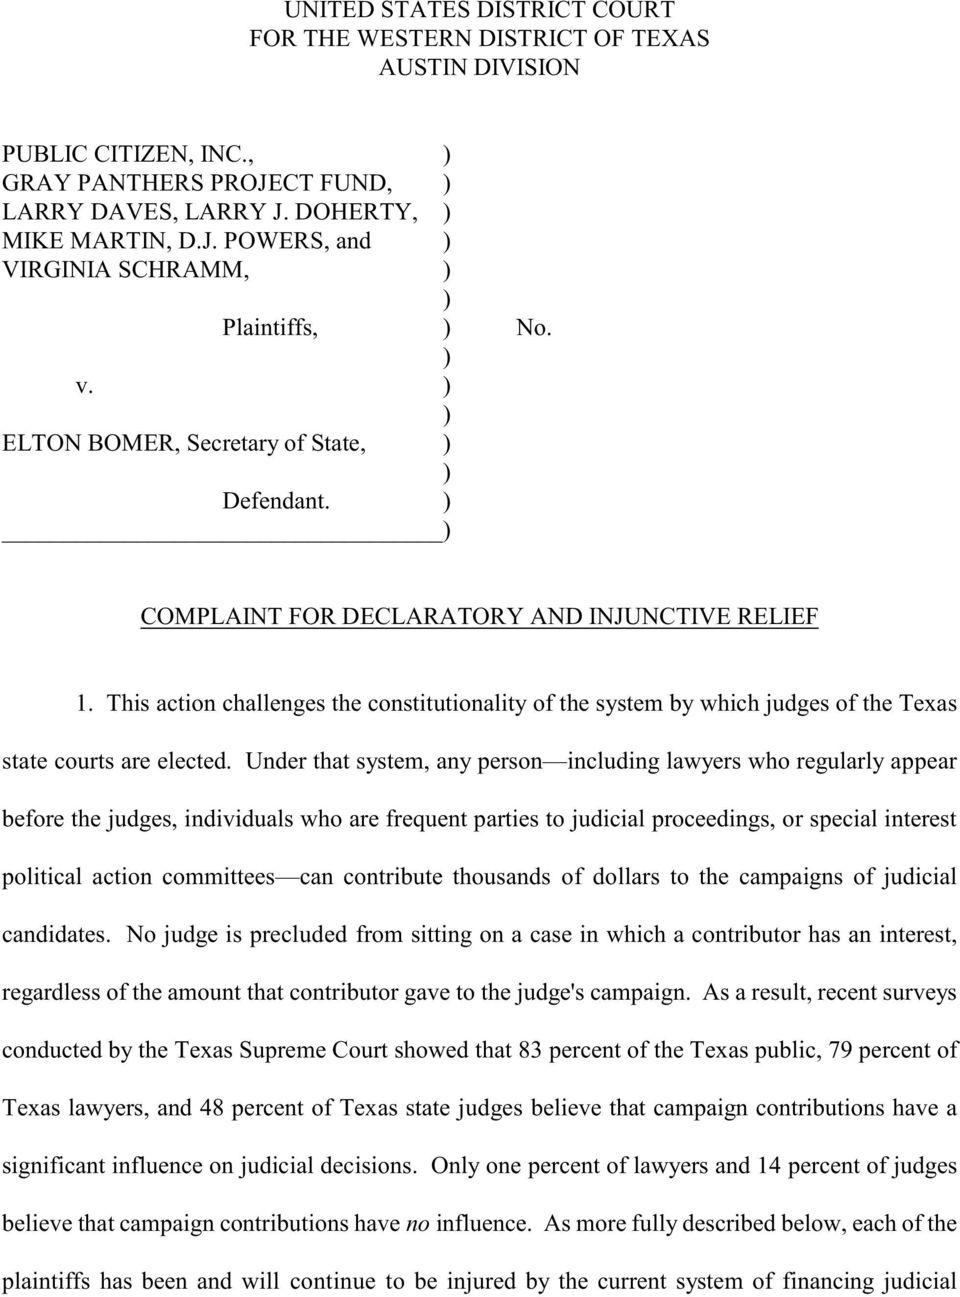 This action challenges the constitutionality of the system by which judges of the Texas state courts are elected.